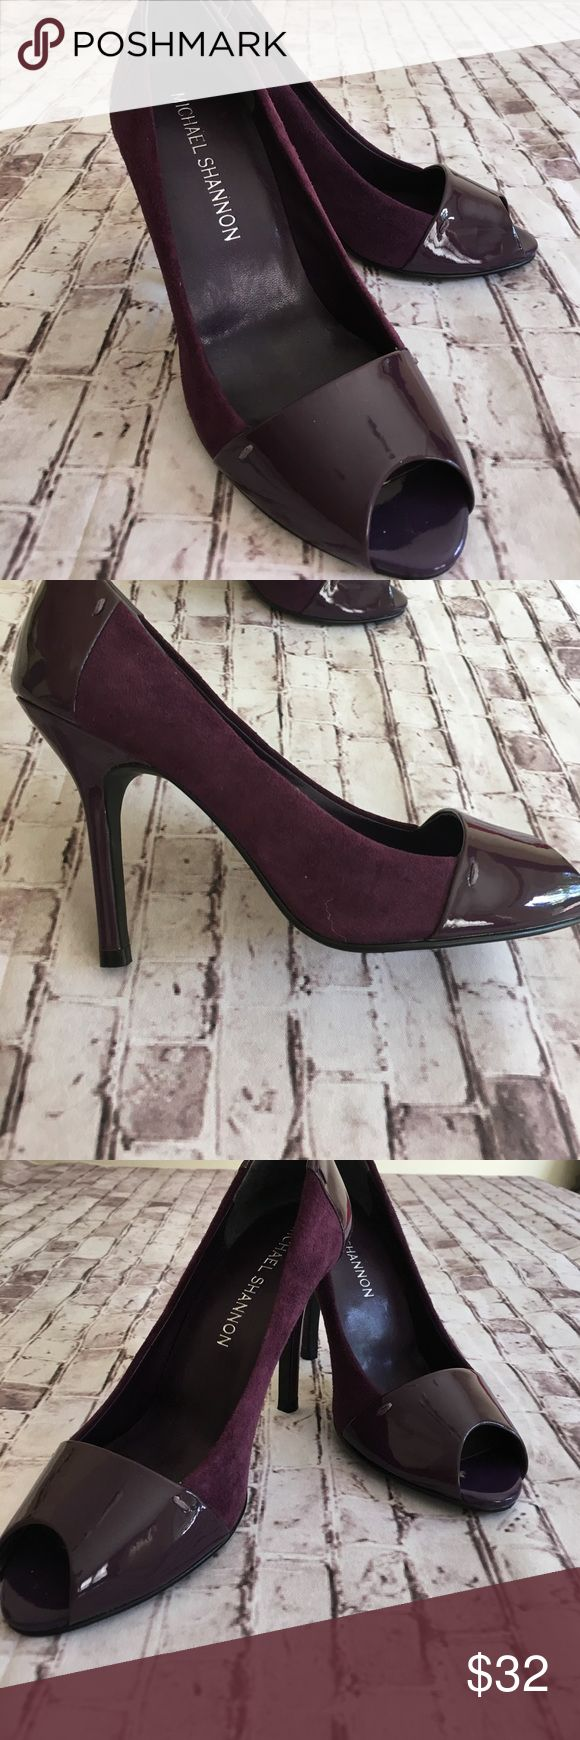 "New Michael Shannon purple open toe heels suede Patent leather and suede leather.Heel height - approx 3.75"". No box included.  Size 5.5 M. Brand new!!!!! Very elegant ❤️ Michael Shannon Shoes Heels"